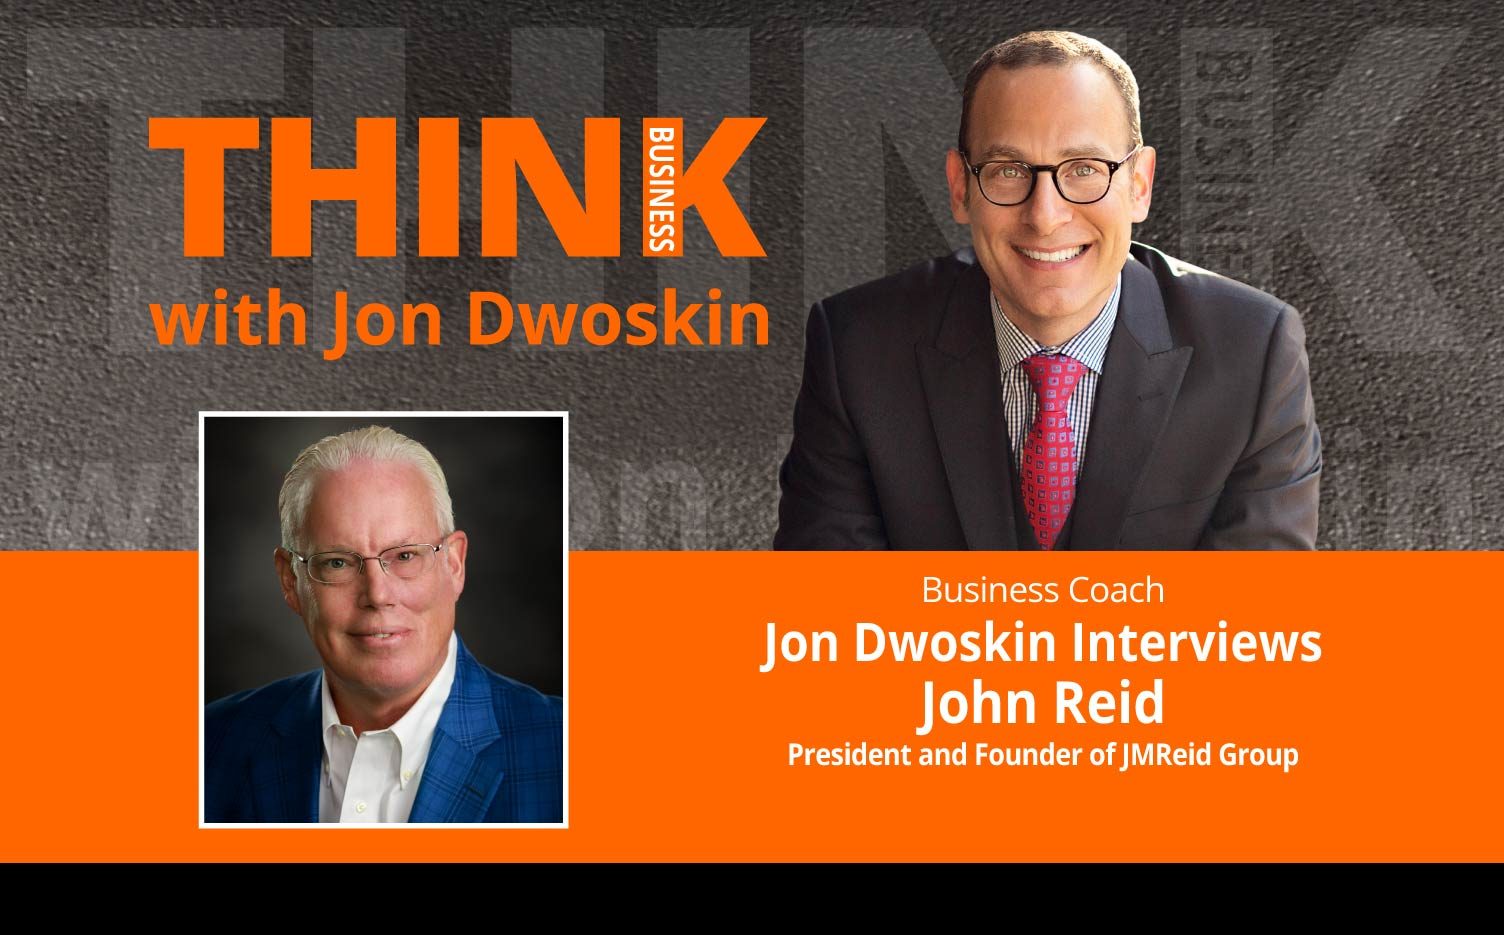 THINK Business Podcast: Jon Dwoskin Interviews John Reid, President and Founder of JMReid Group